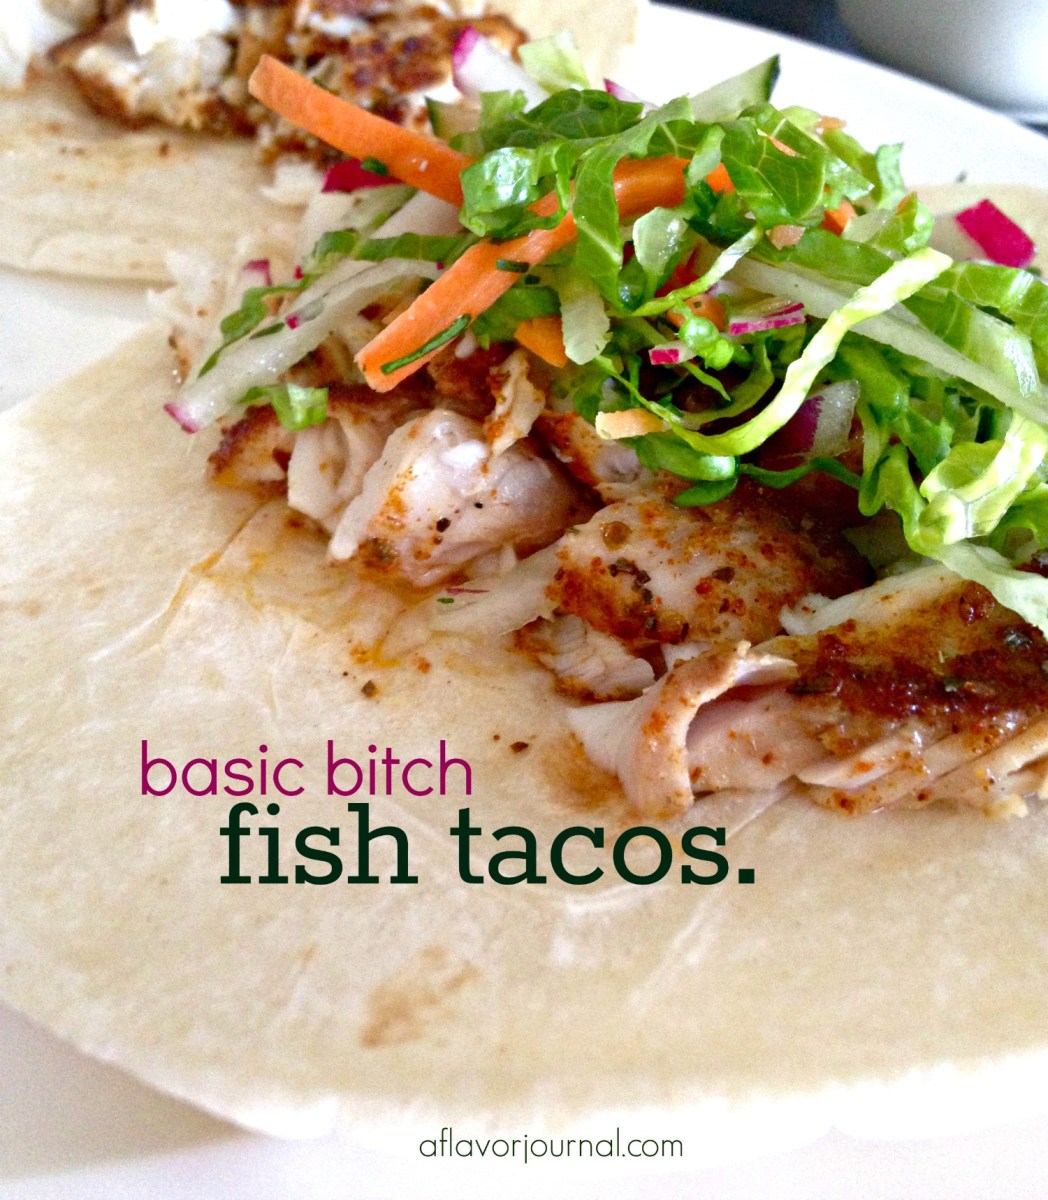 basic bitch fish tacos.